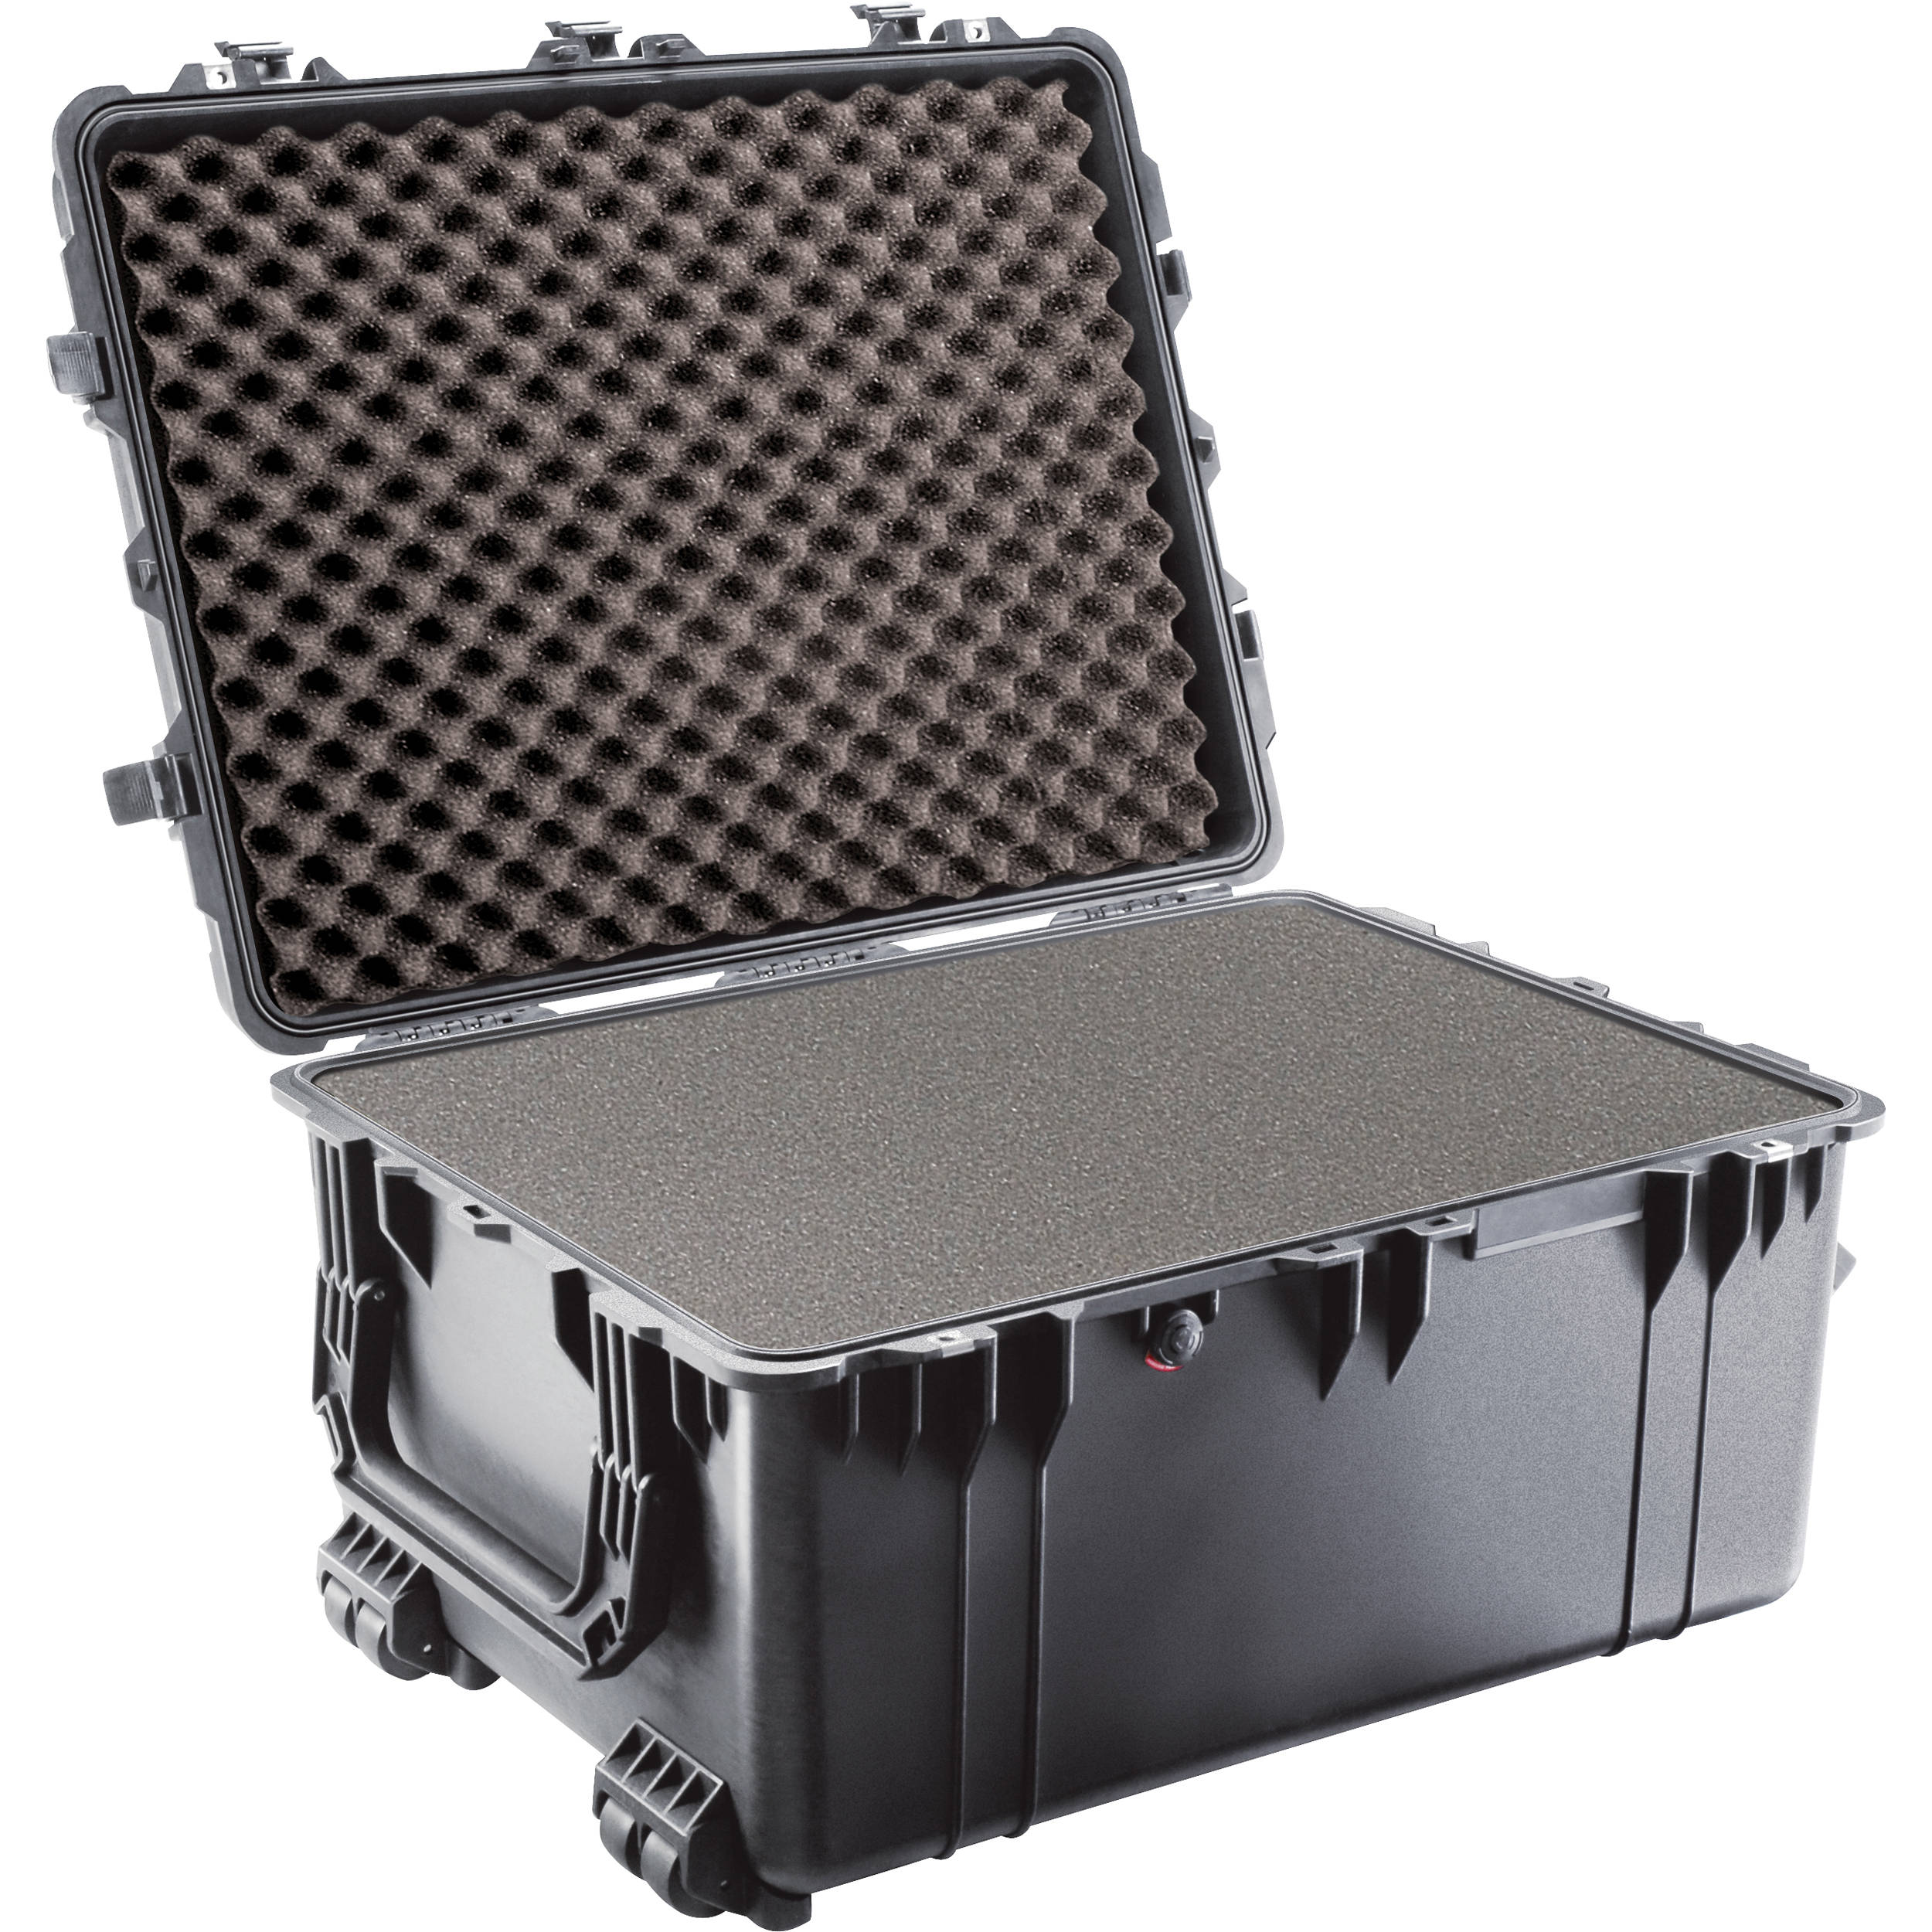 Pelican 1630 Case with Foam (Black)